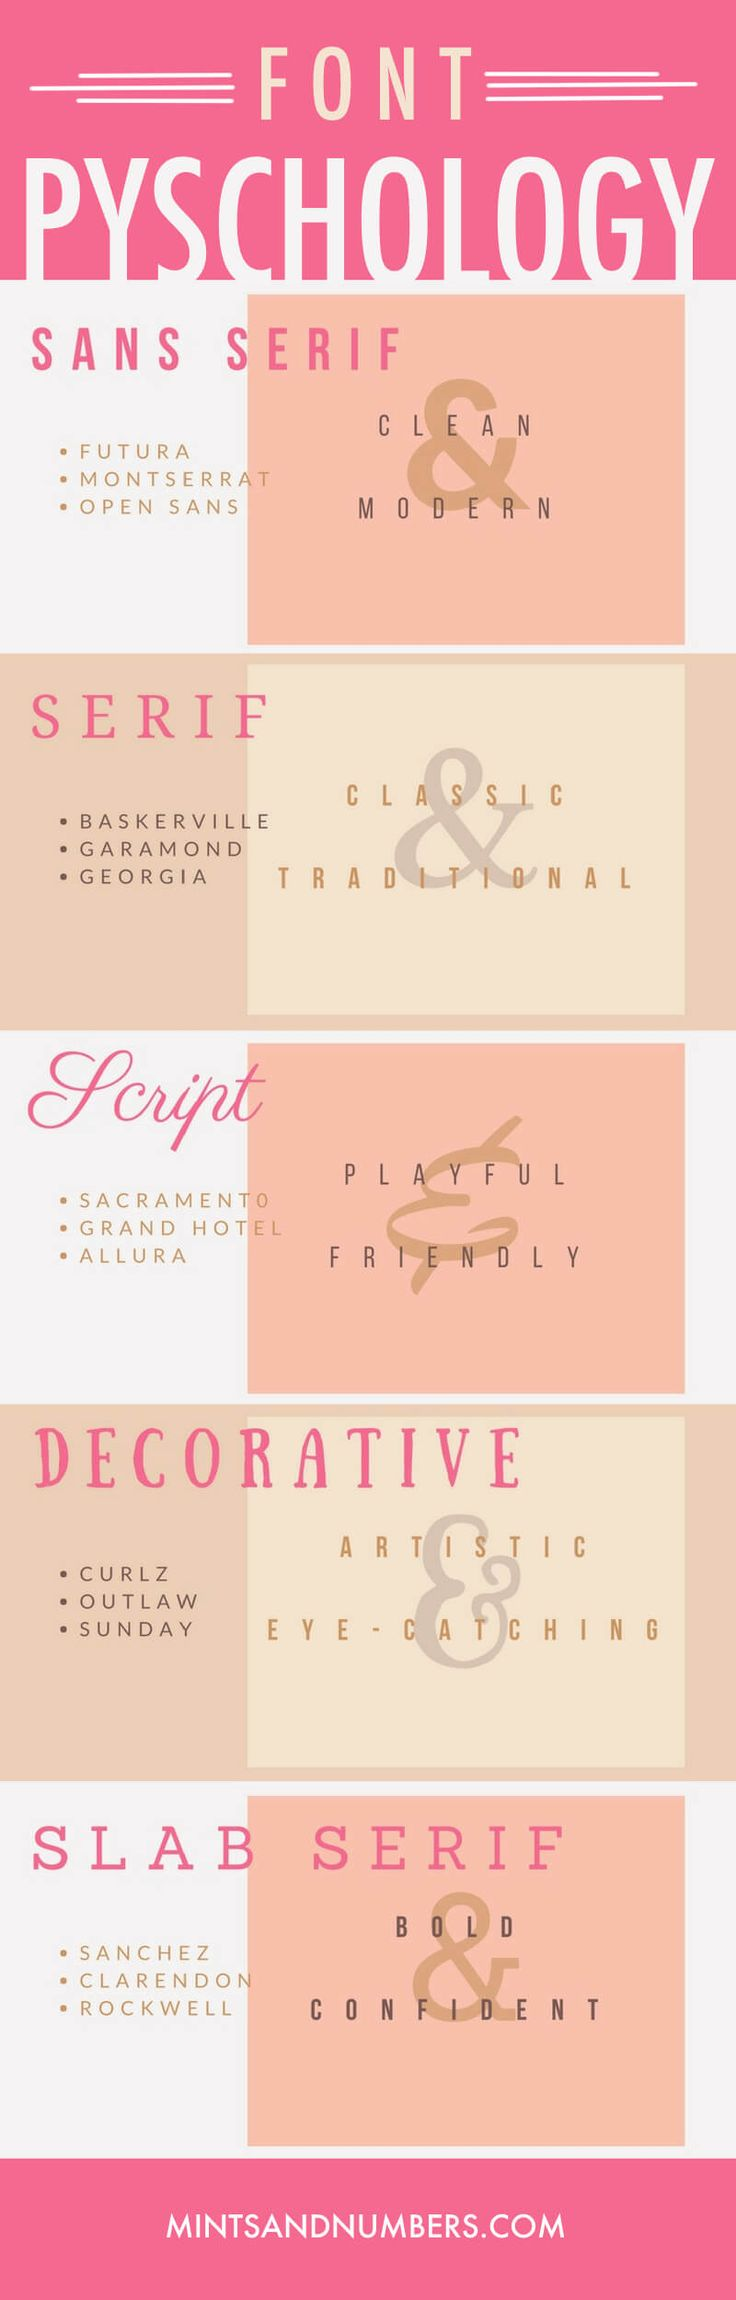 Psychology-Infographic-How-to-pick-the-perfect-fonts-for-your-blog.-Typography-is-just-as-important-as Psychology Infographic : How to pick the perfect fonts for your blog. Typography is just as important as ...